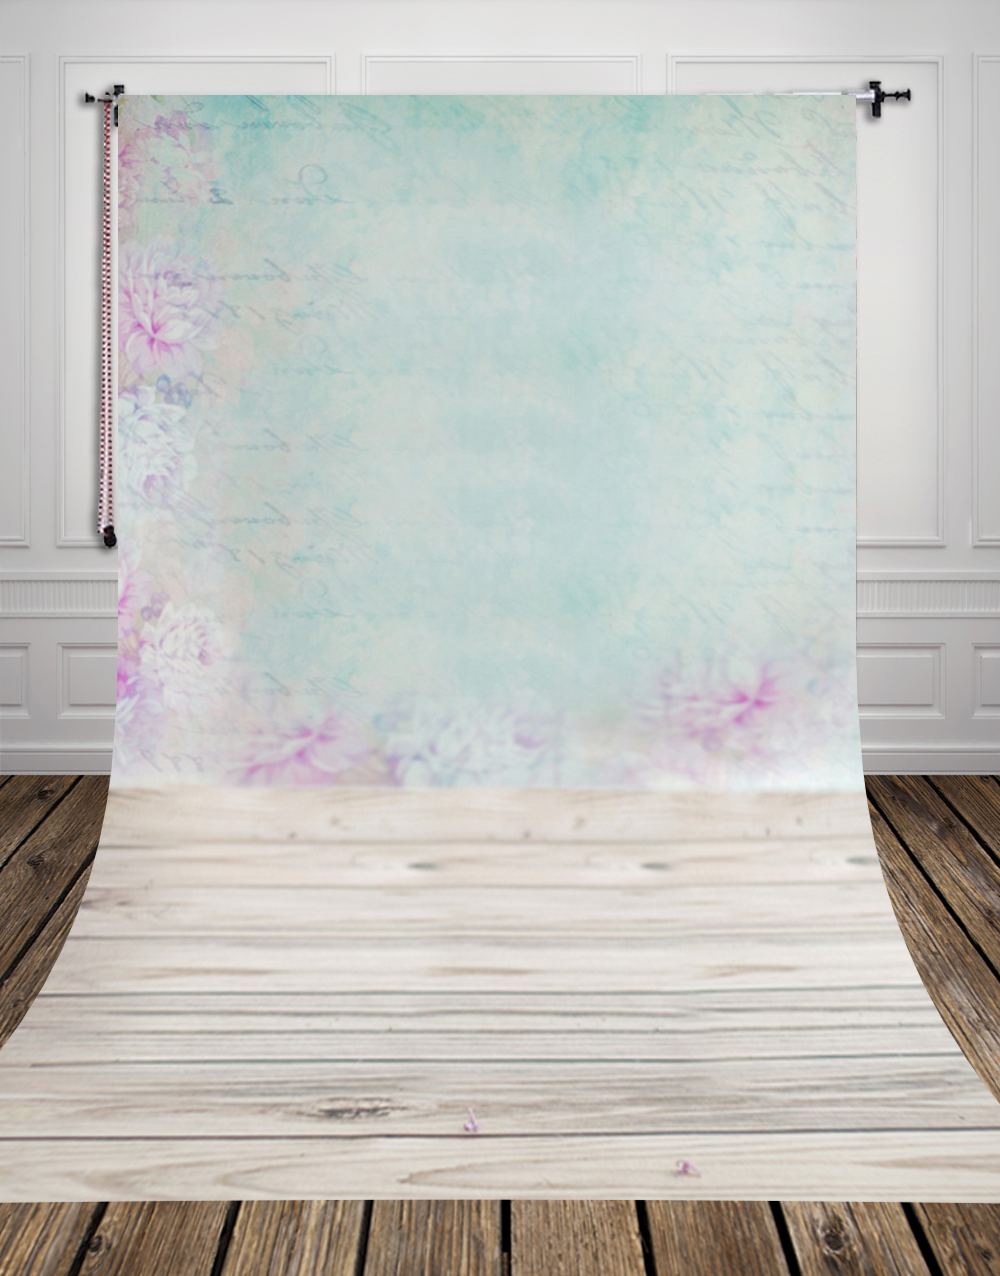 Pastel wallpaper and light wood floor printed photo studio backdrop newborn photography backdrops background D-9633 футболка женская dc star tropical green